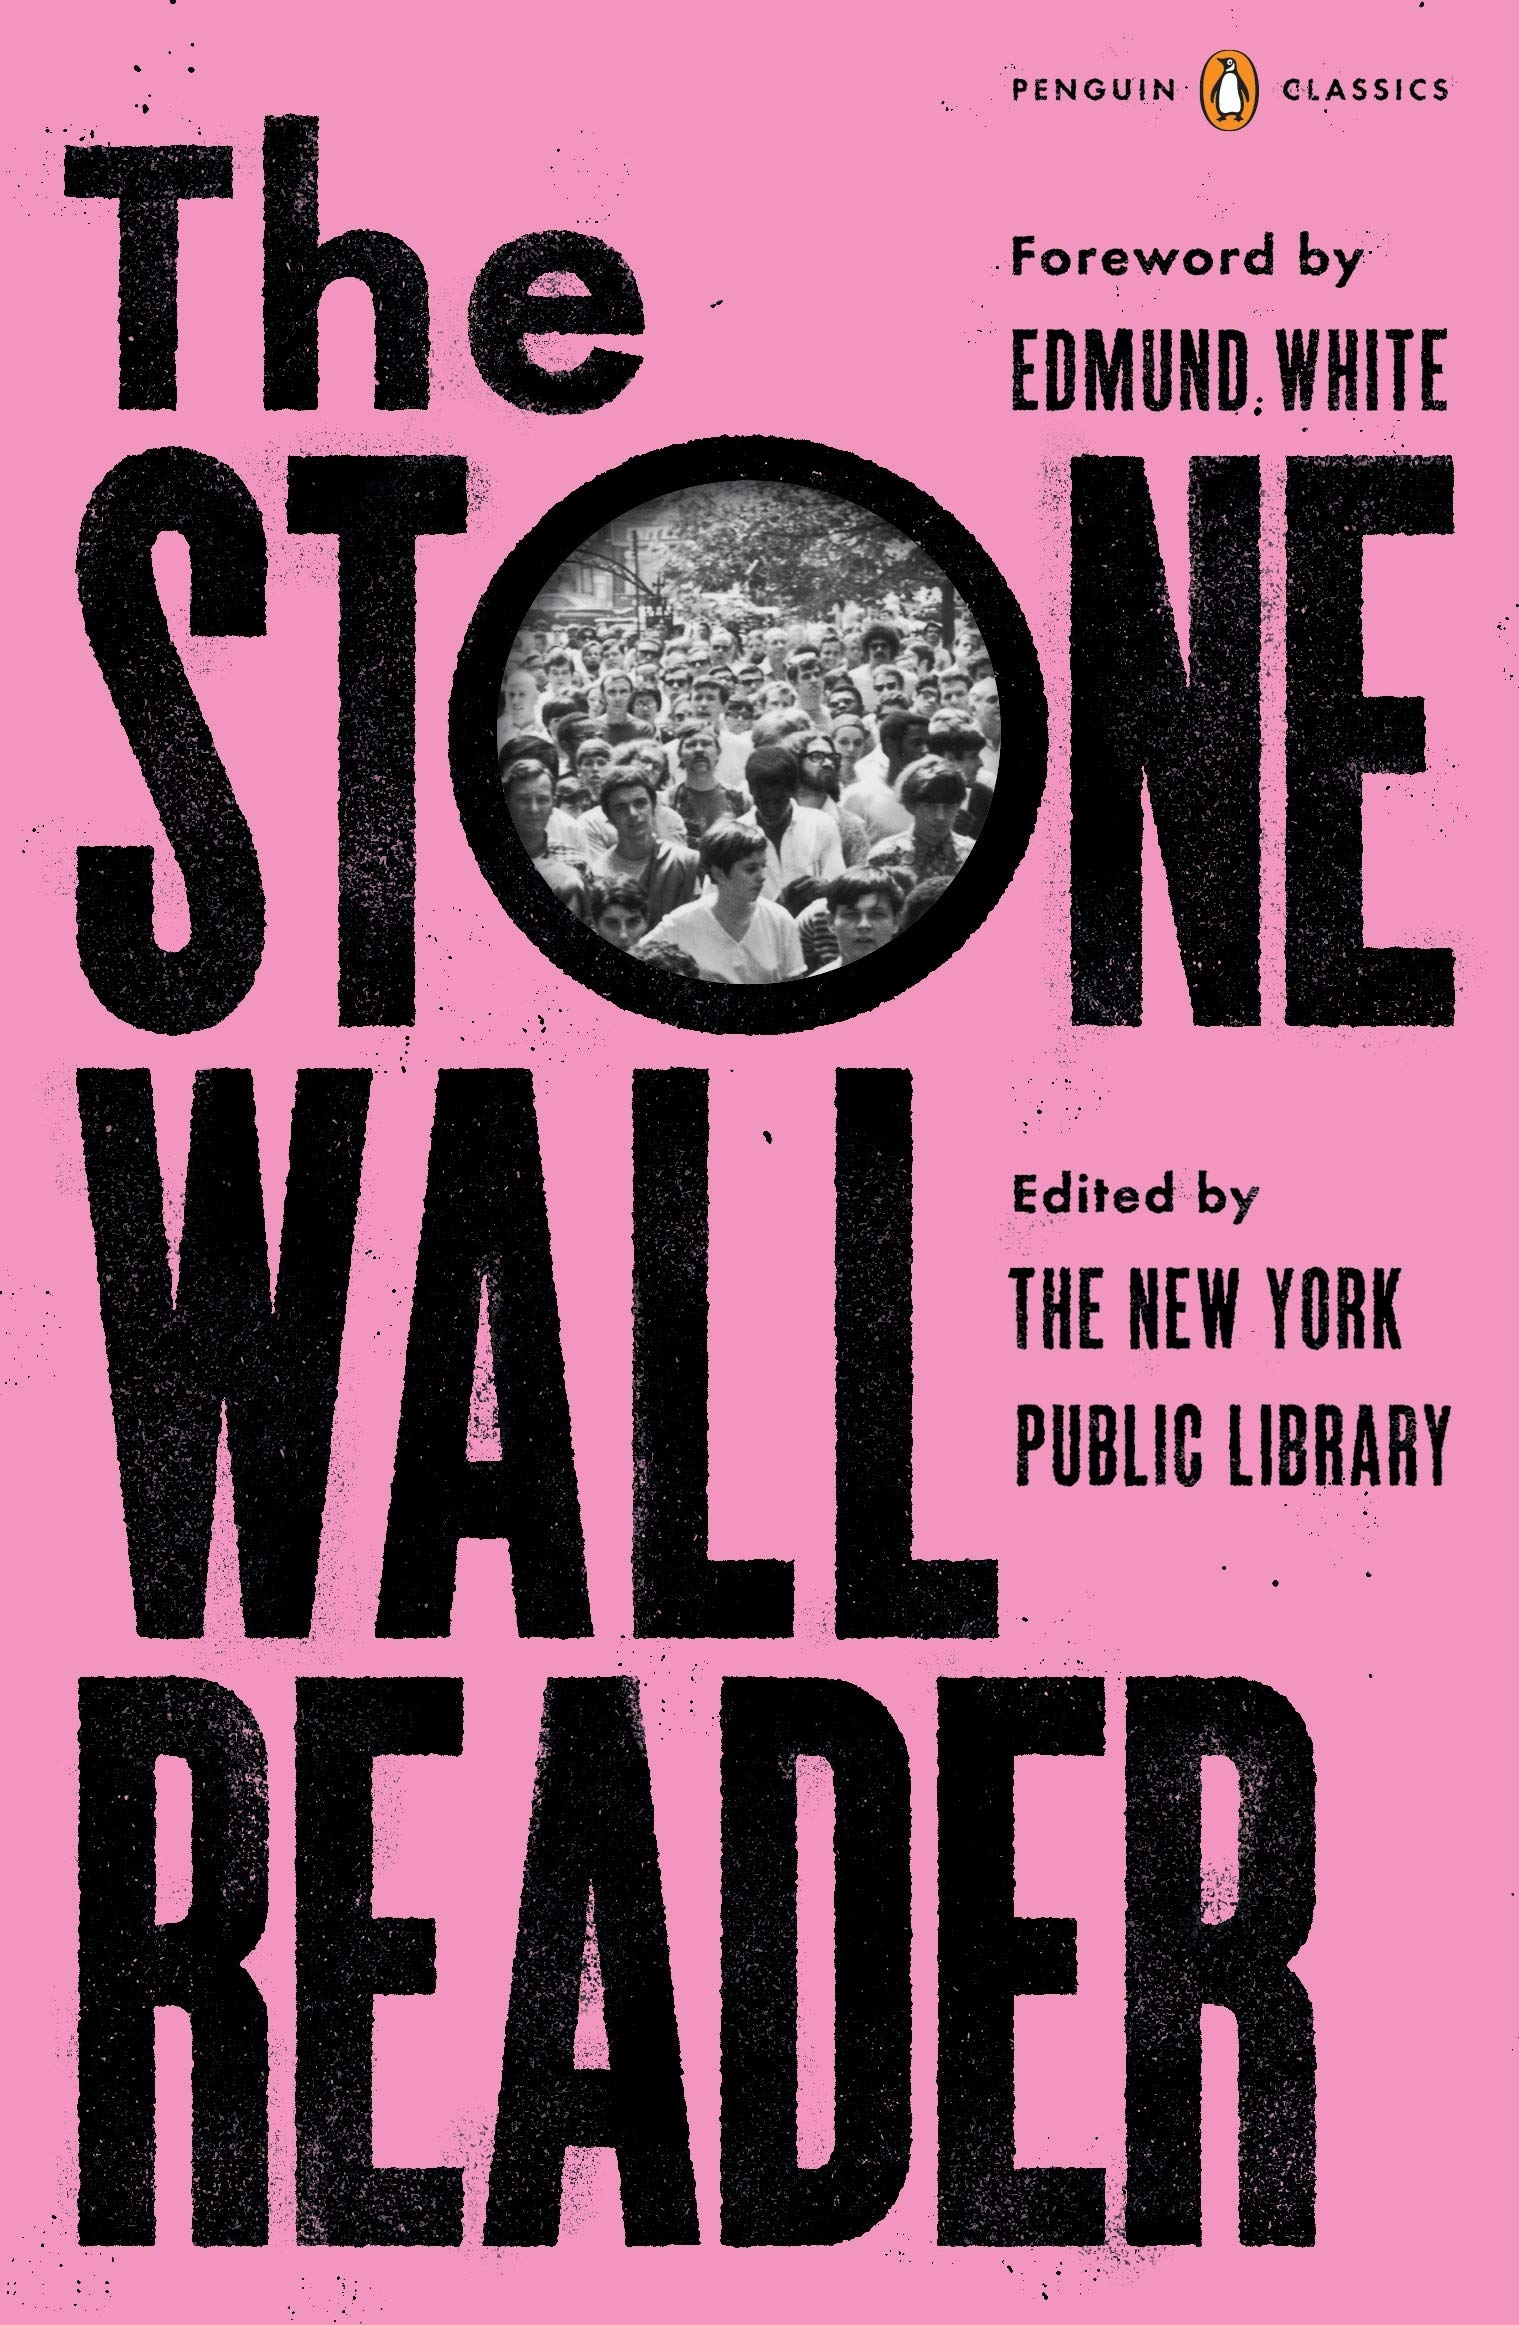 The Stonewall Reader from The New York Public Library